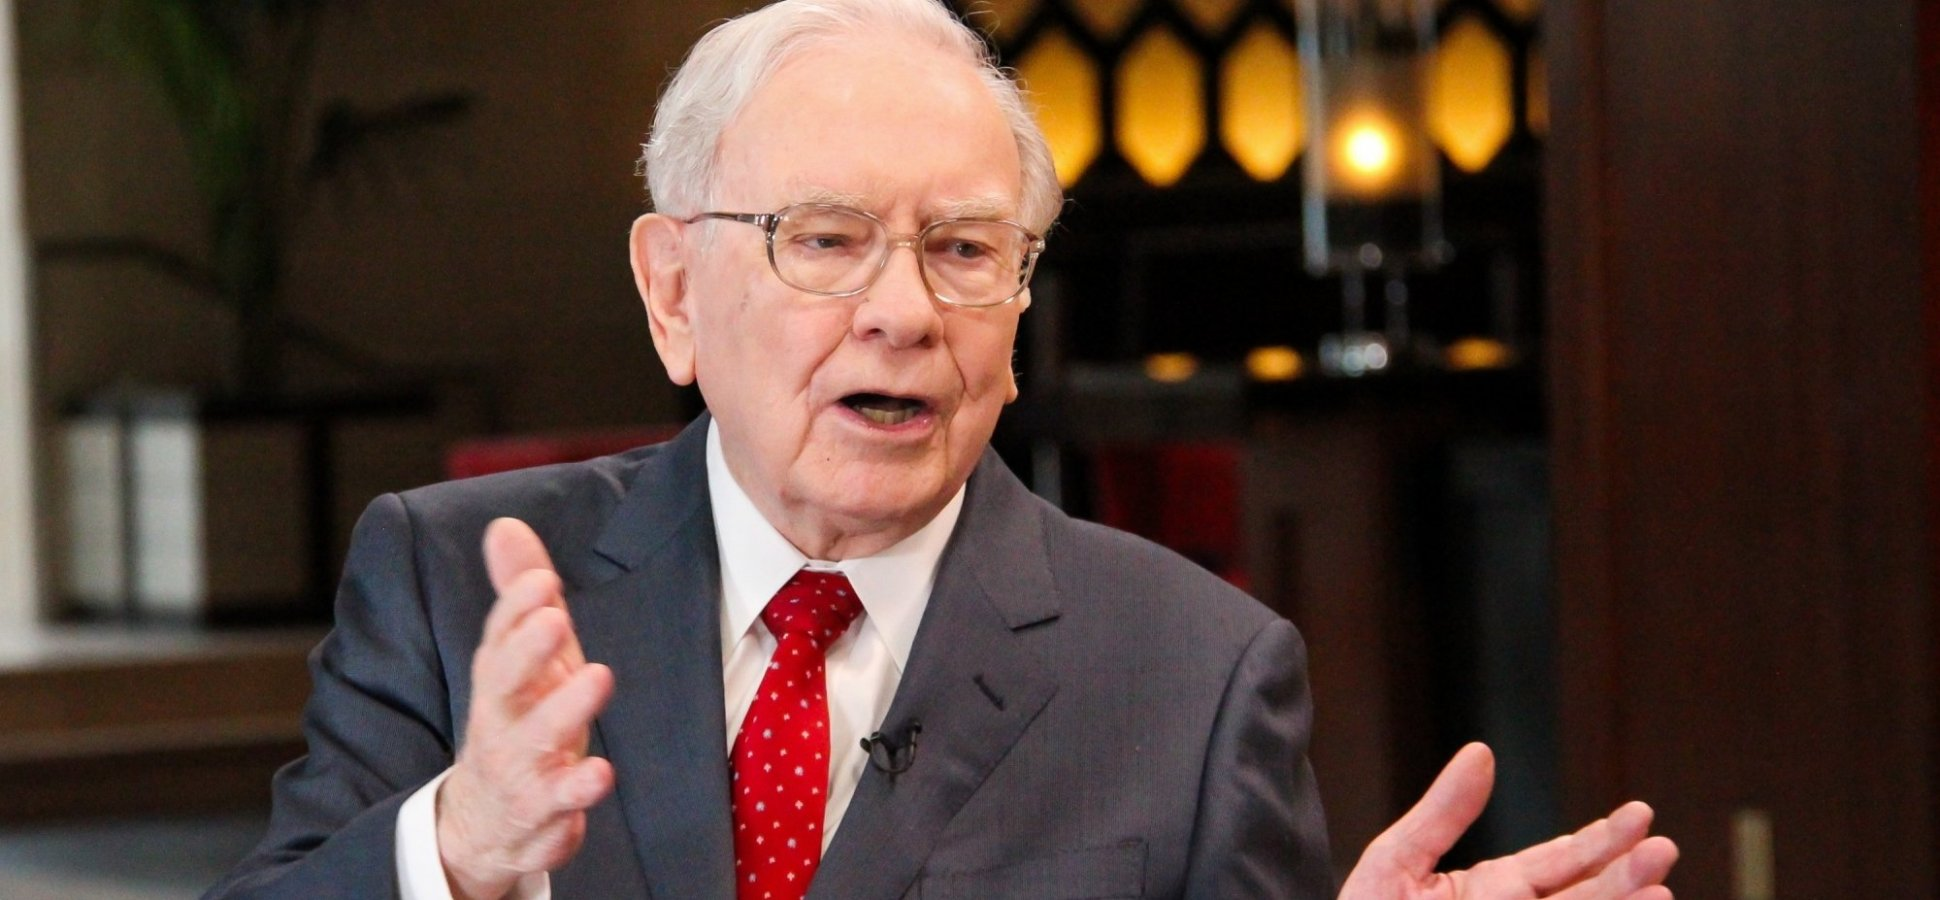 Warren Buffett Says You Should Ask This 1 Question to Become the Best Version of Yourself